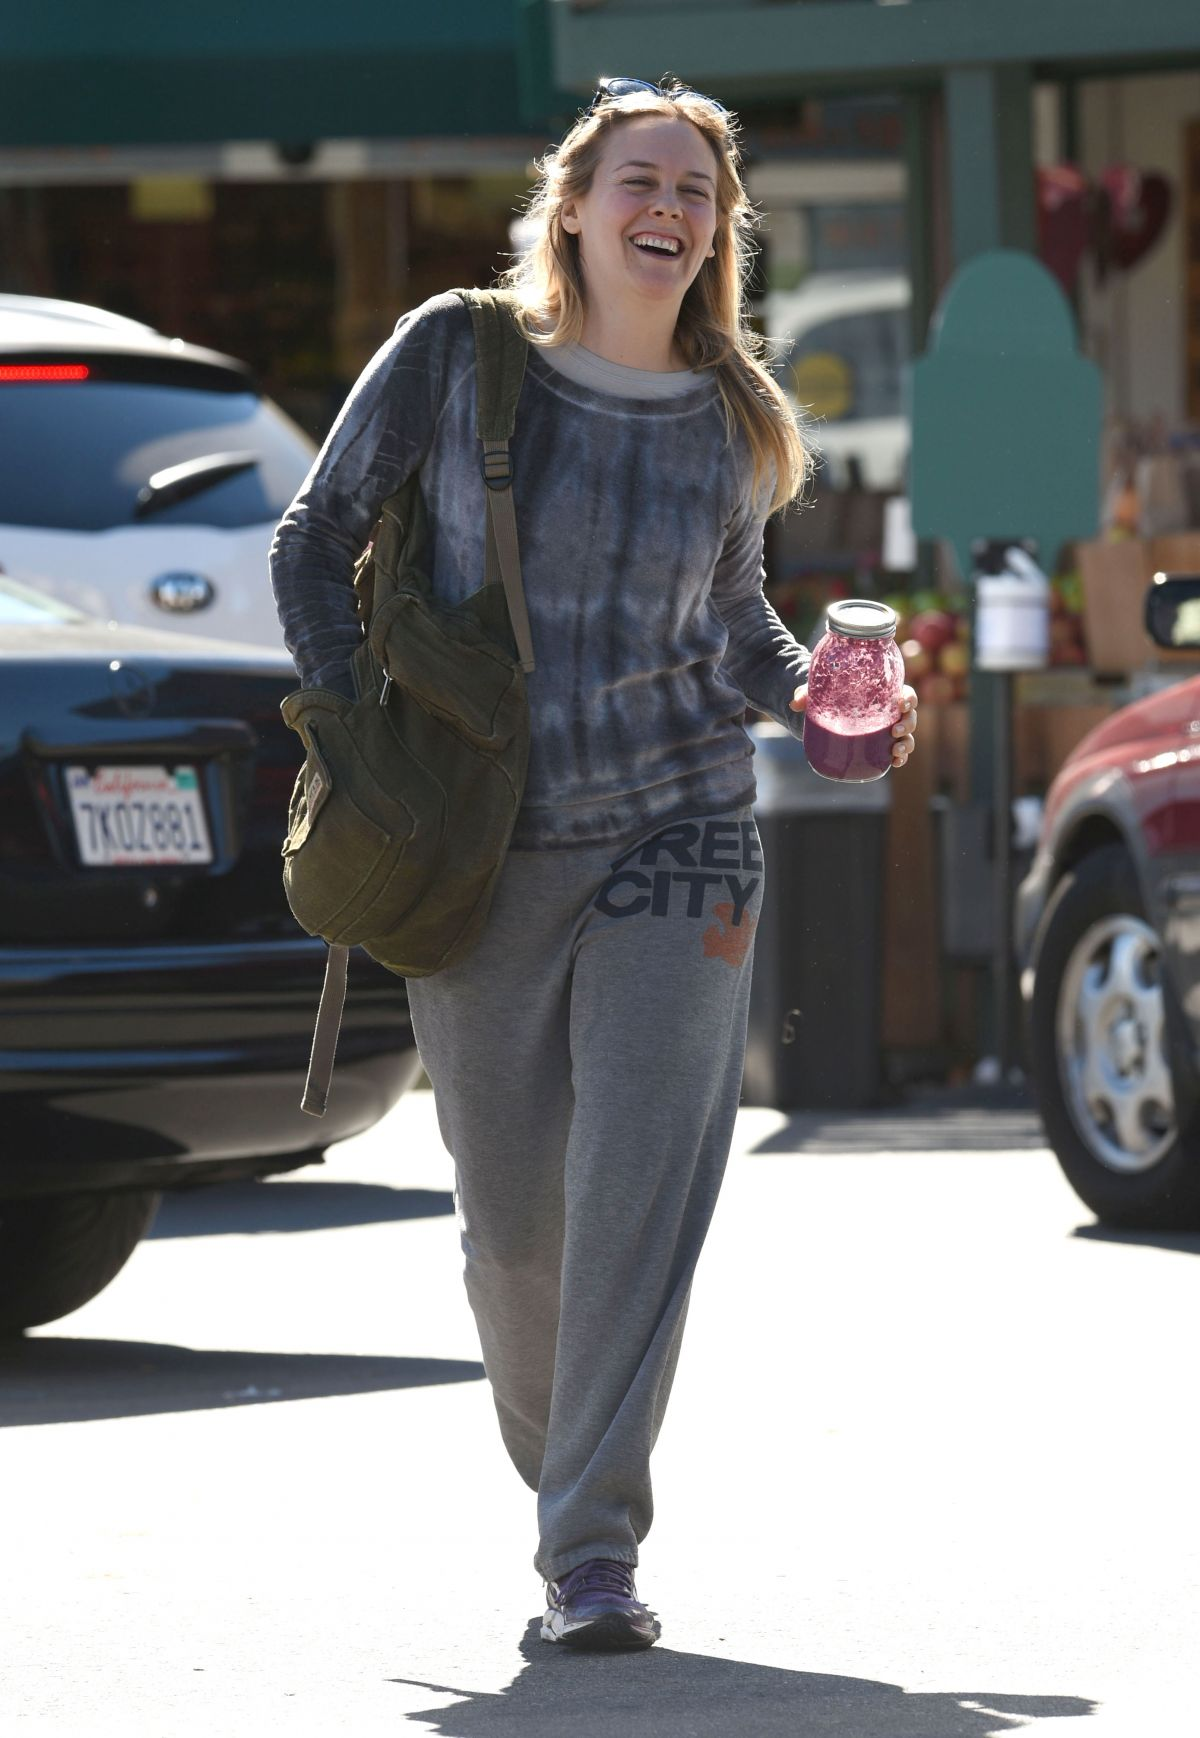 alicia-silverstone-at-whole-foods-in-los-angeles-02-05-2016_3.jpg